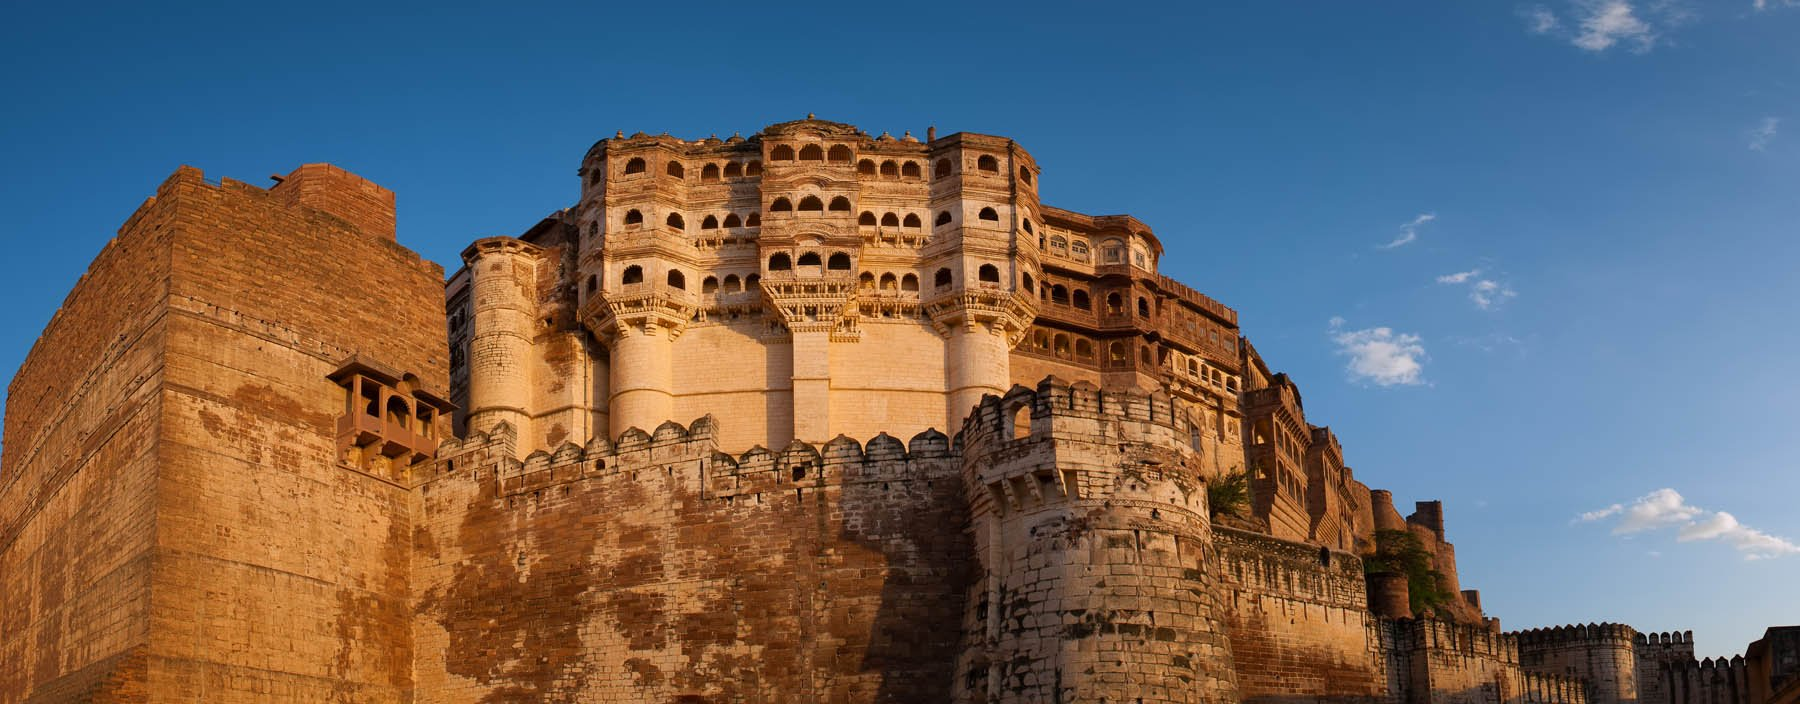 in, jodhpur, panoramic view of the mehrangarh fort.jpg